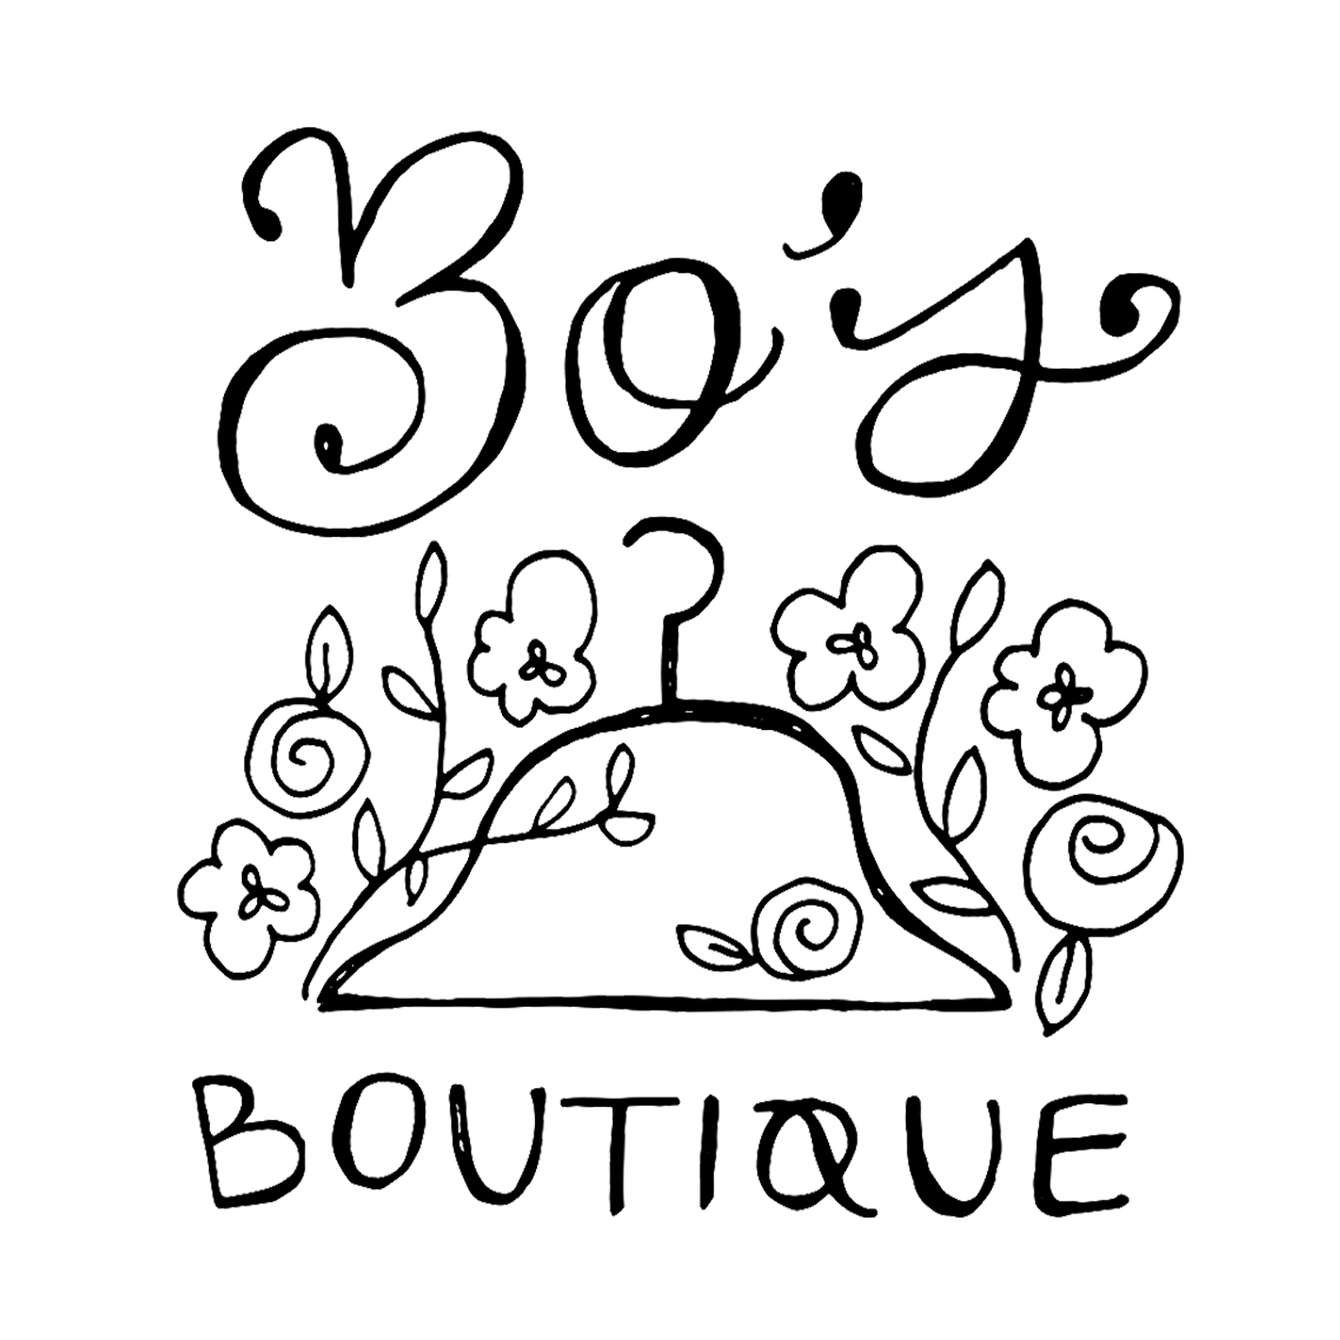 Bo's Boutique